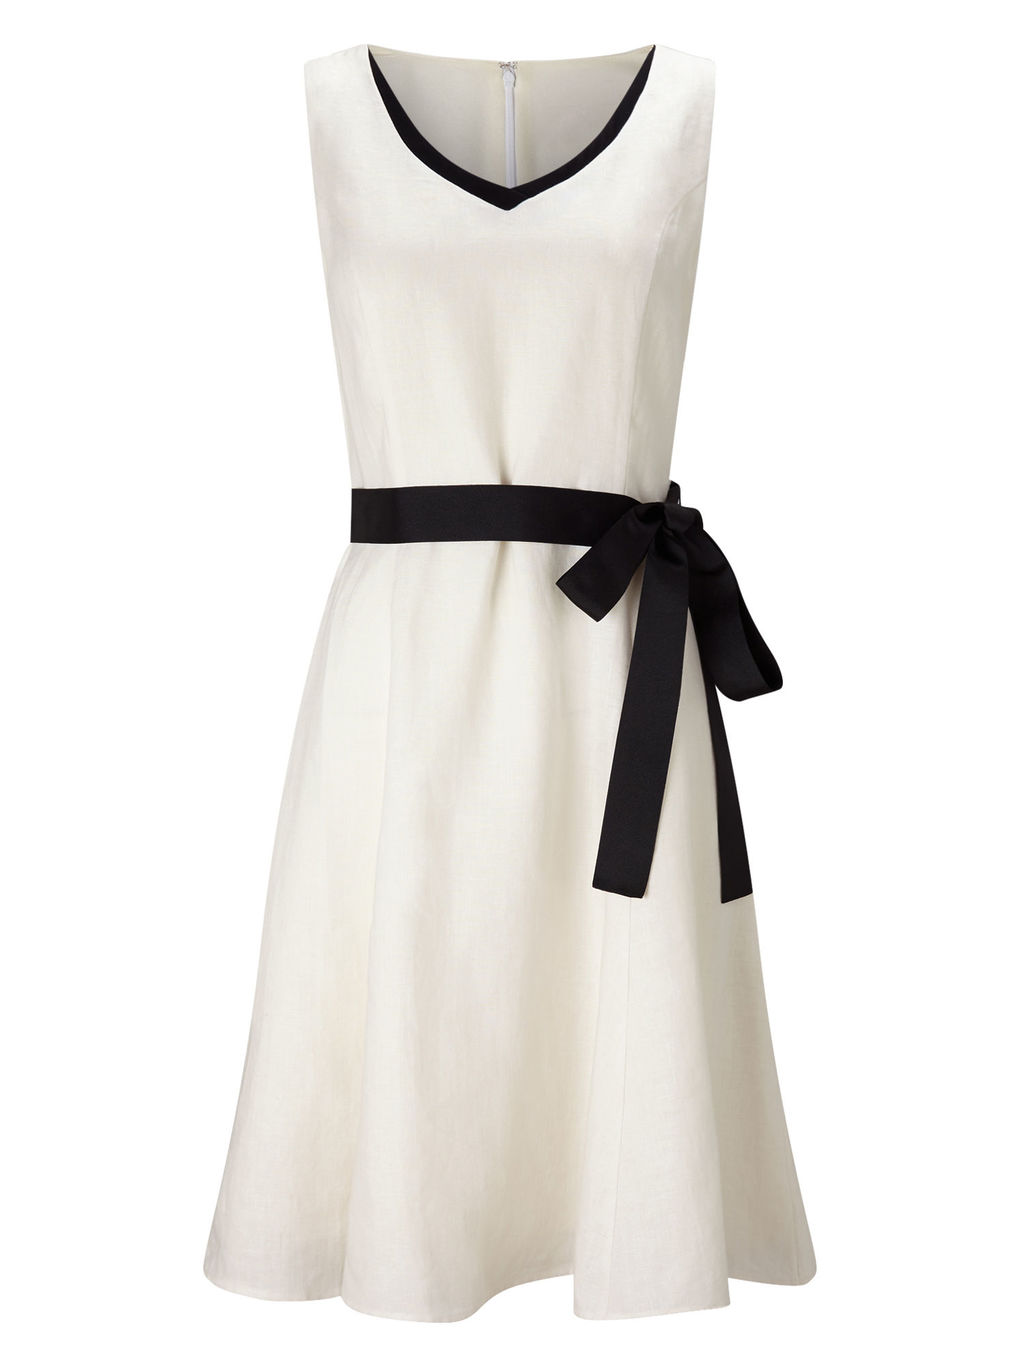 Tipped Linen Dress - length: below the knee; neckline: v-neck; pattern: plain; sleeve style: sleeveless; waist detail: belted waist/tie at waist/drawstring; predominant colour: ivory/cream; secondary colour: black; fit: fitted at waist & bust; style: fit & flare; fibres: linen - 100%; occasions: occasion; sleeve length: sleeveless; trends: monochrome; texture group: lace; pattern type: fabric; season: s/s 2016; wardrobe: event